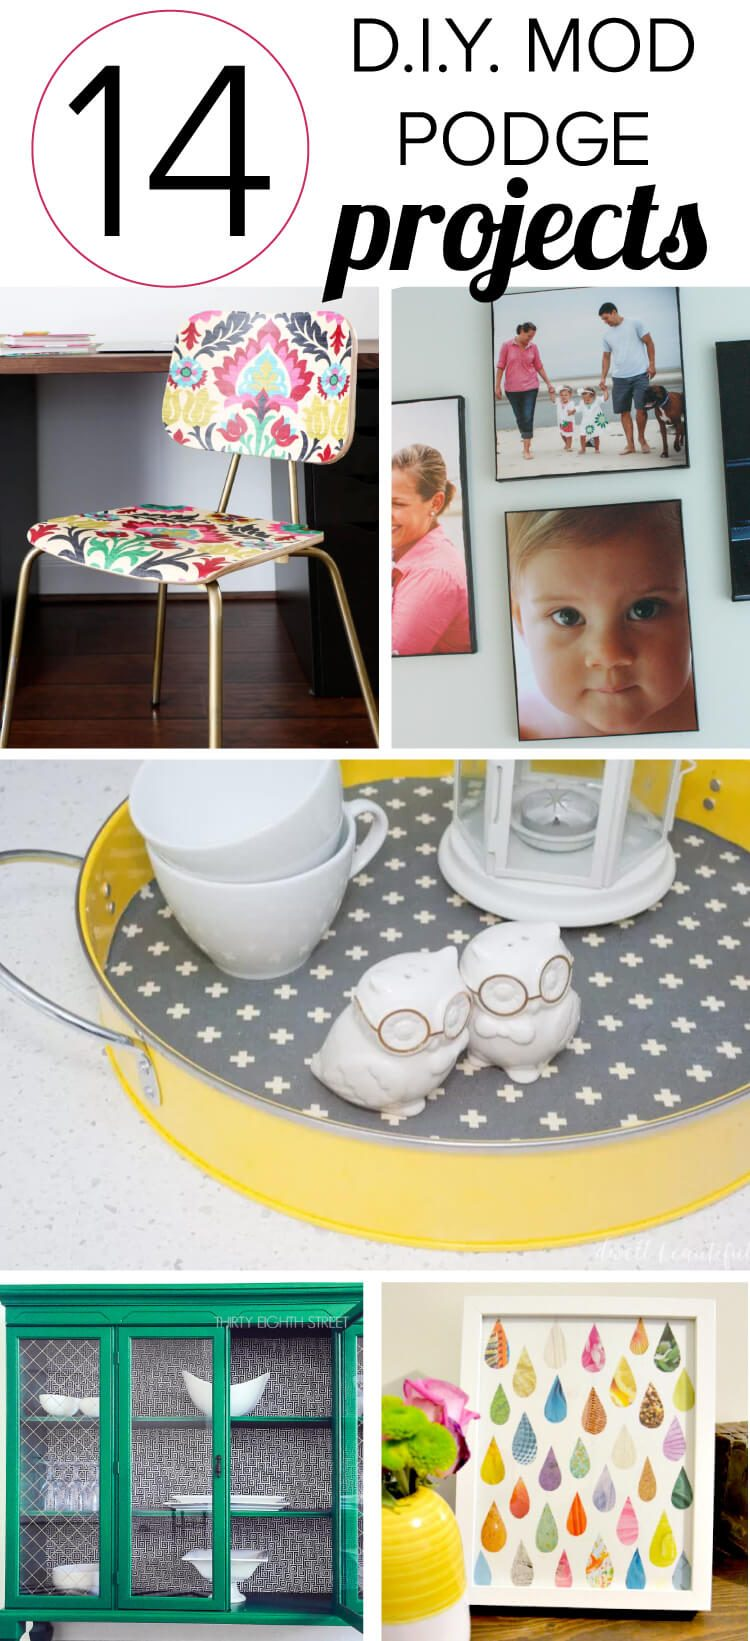 There are so many amazing mod podge crafts and DIY mod podge projects out there. I am BLOWN away by some of these ideas, especially numbers 1 and 7. Can't wait to try them.